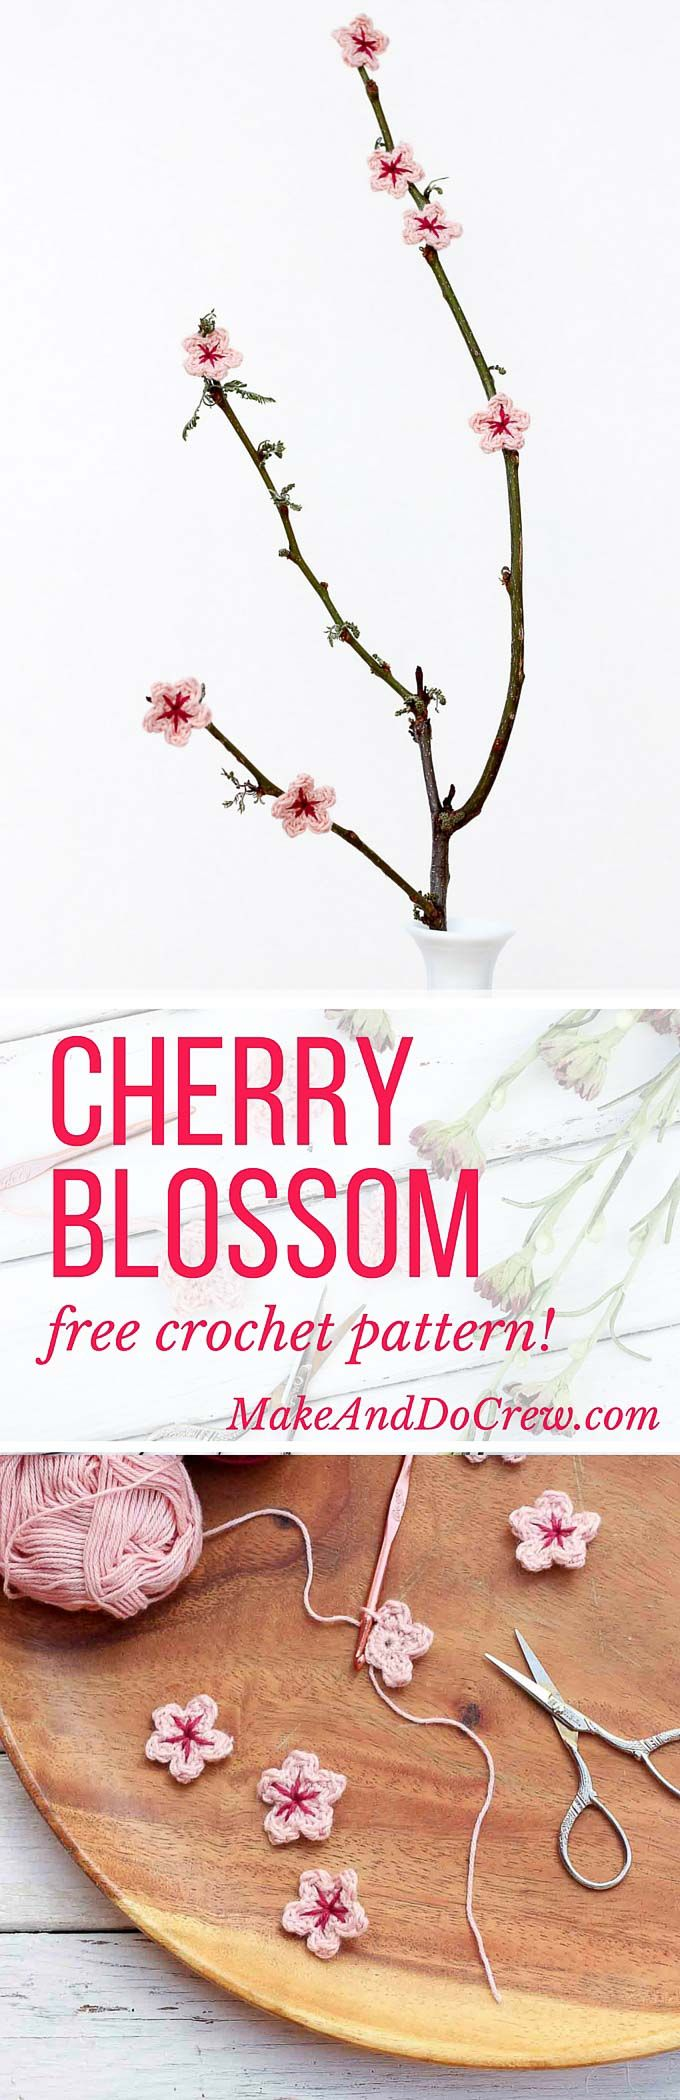 This free crochet flower pattern makes perfect little cherry blossoms, but can be customized to make a variety of flowers for home decor, headbands or even accents for other crocheted pieces. | MakeAndDoCrew.com ☂ᙓᖇᗴᔕᗩ ᖇᙓᔕ☂ᙓᘐᘎᓮ http://www.pinterest.com/teretegui